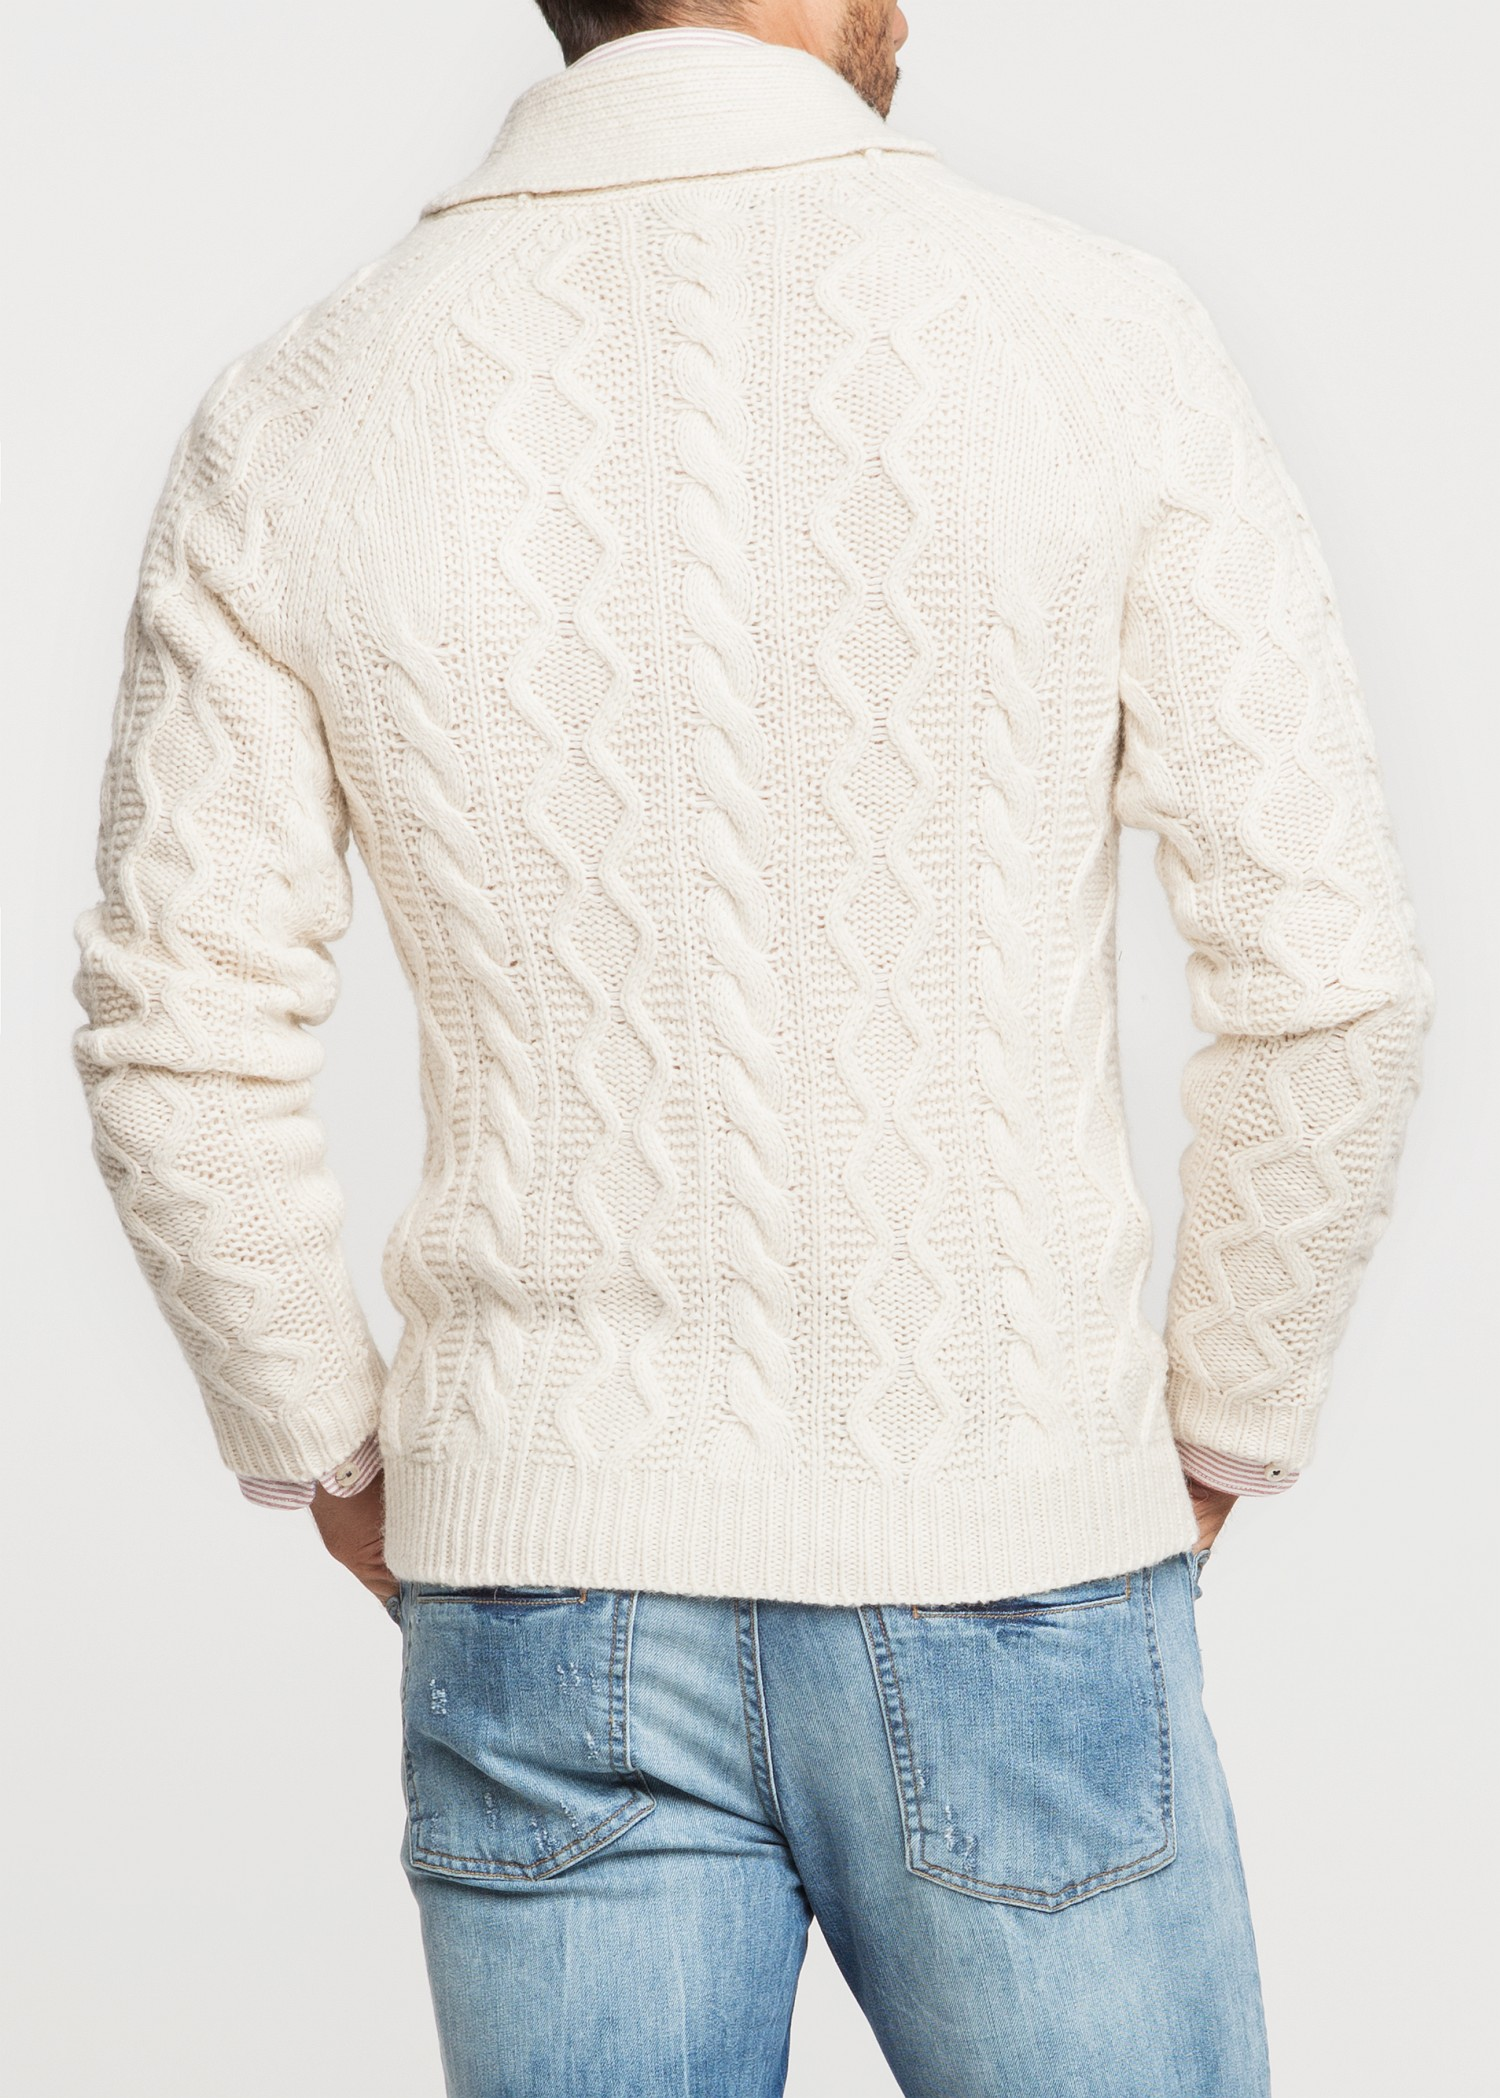 Mango Shawl Collar Cableknit Cardigan In White For Men